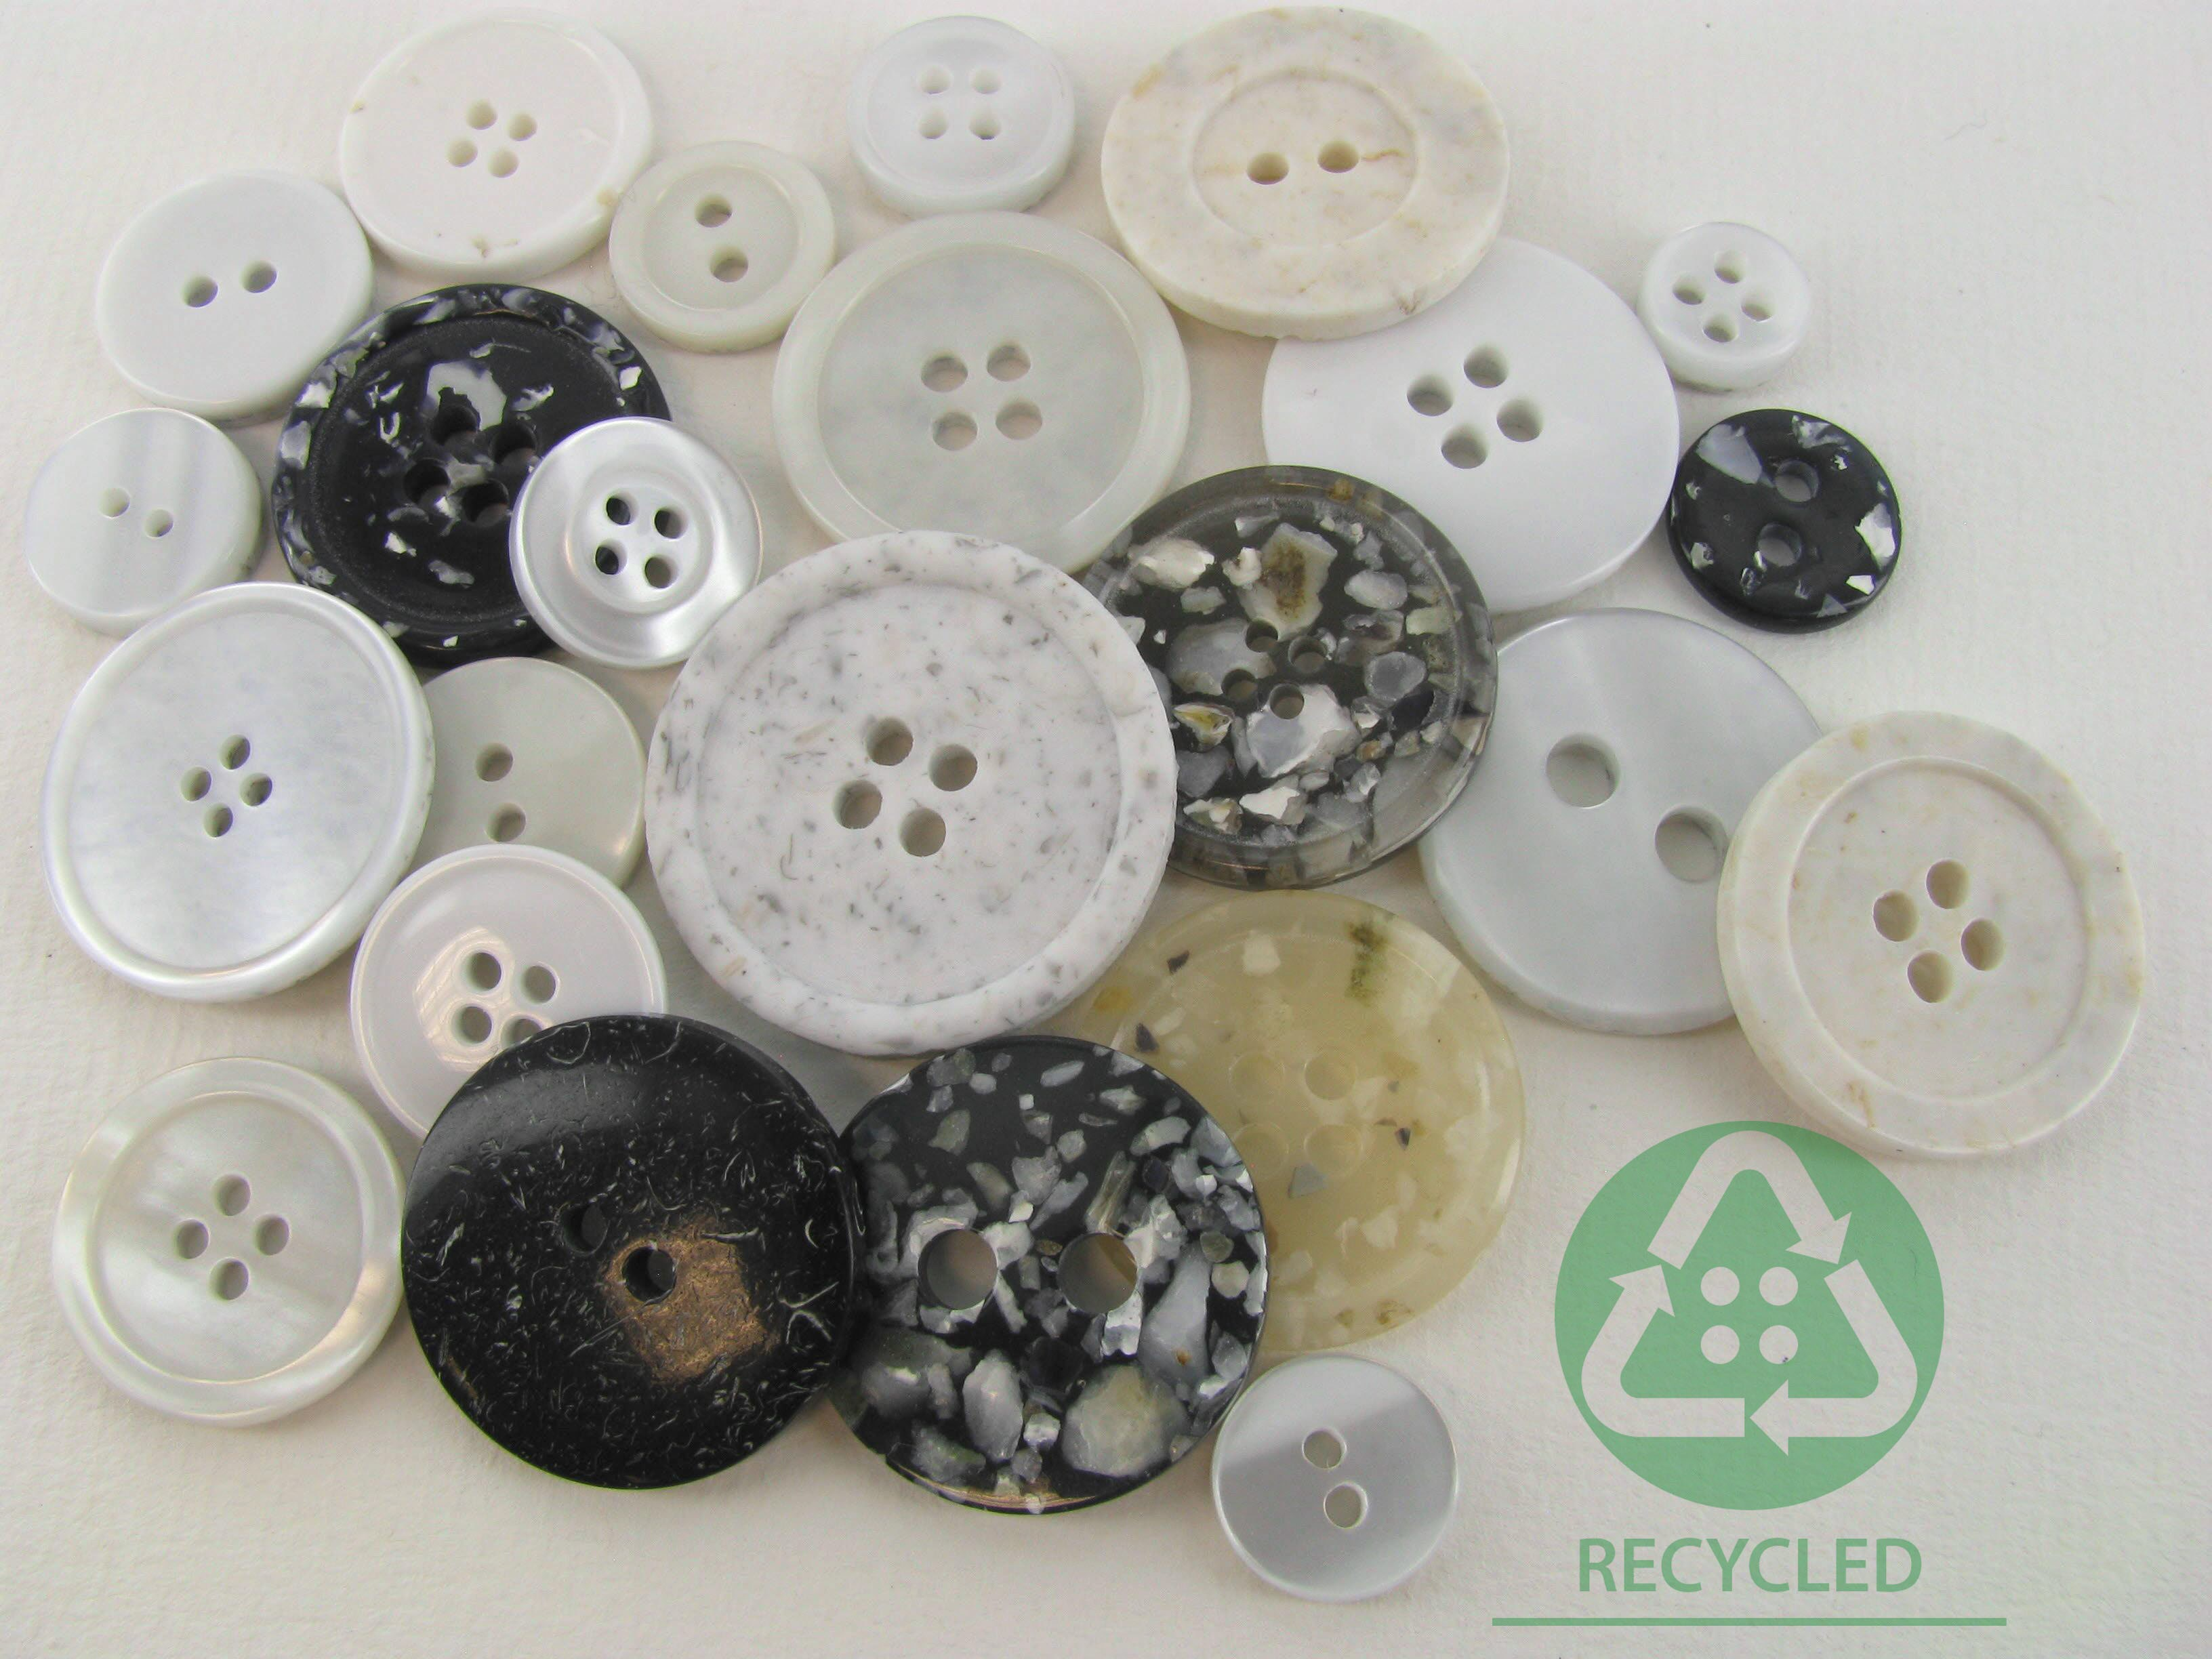 Our buttons in recycled material